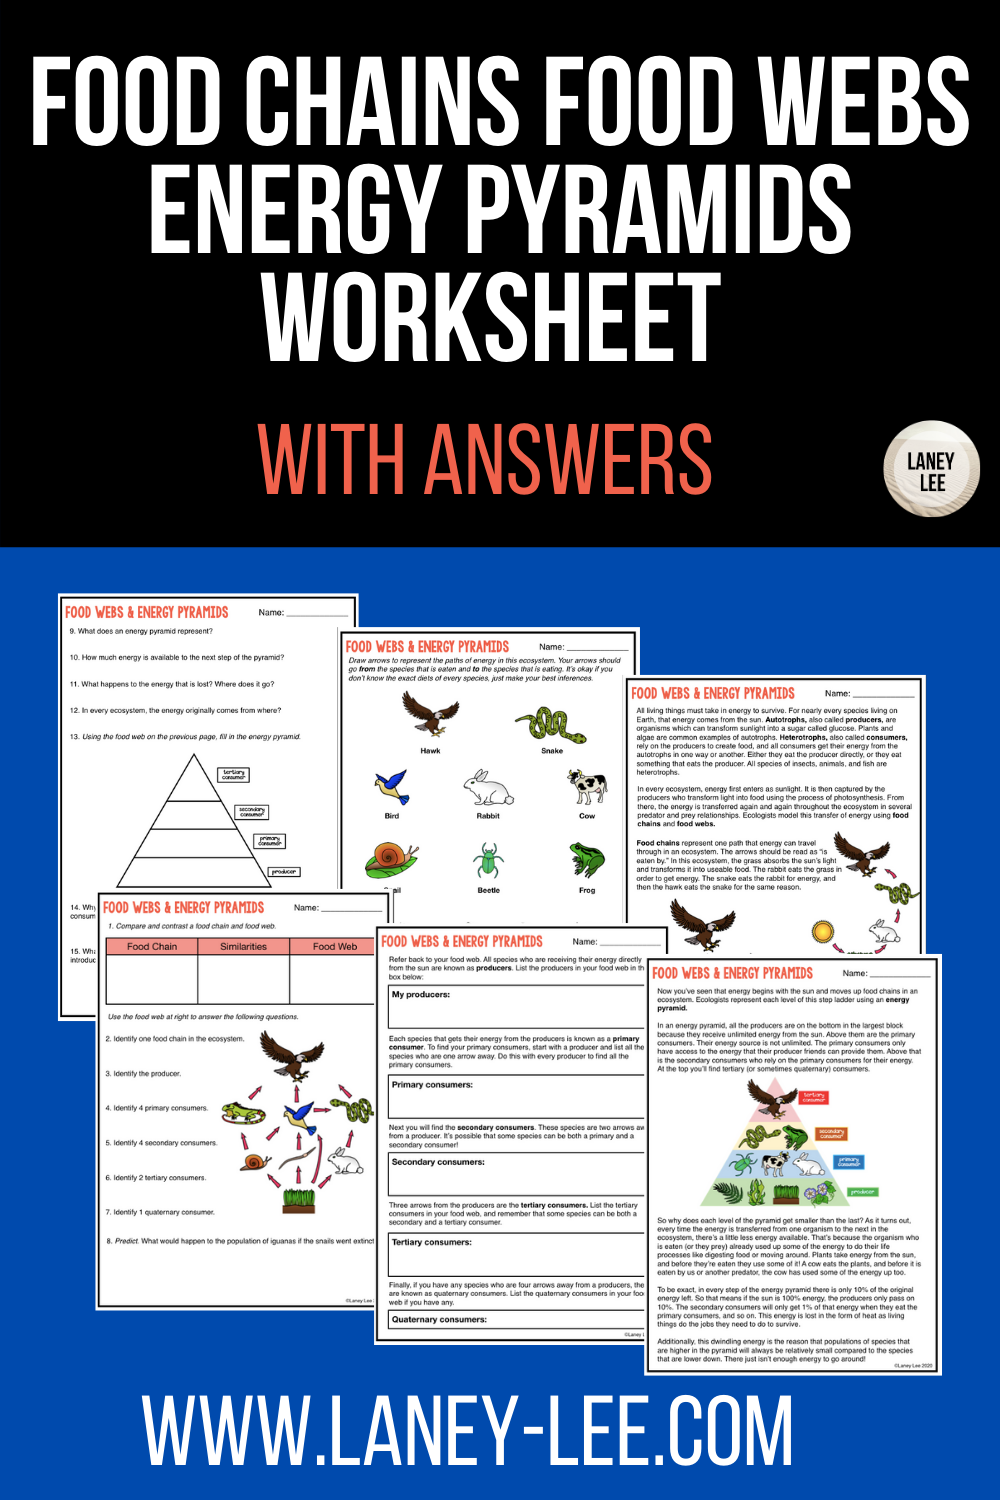 Food Chains and Food Webs Worksheet with Answers - Laney Lee